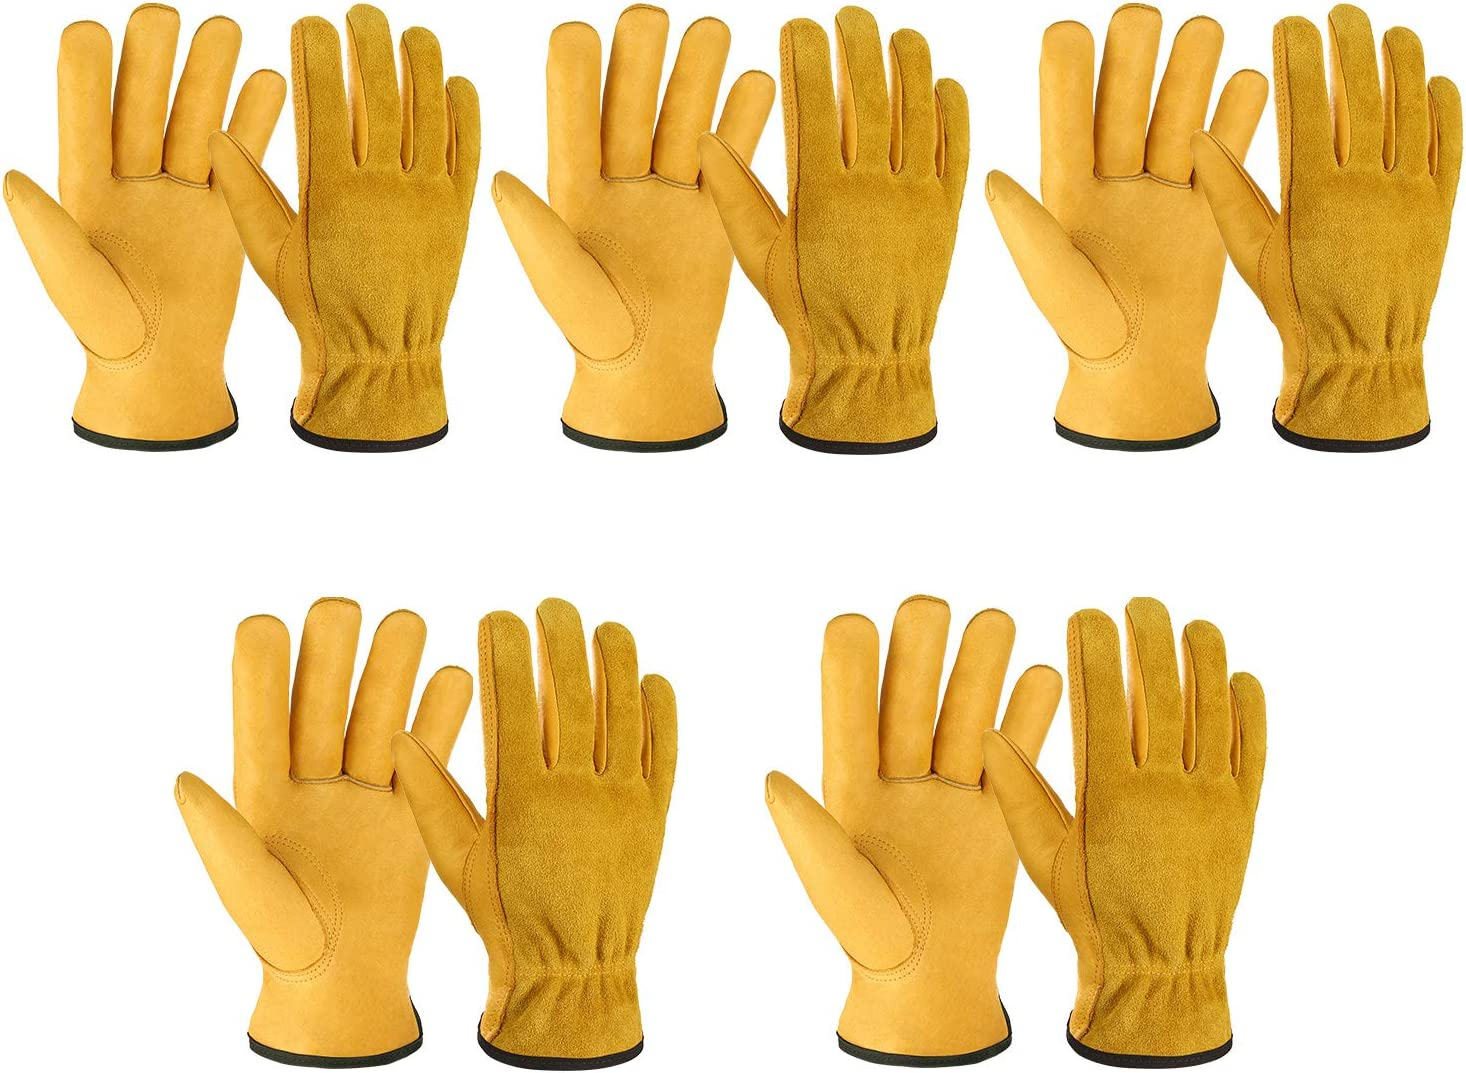 OZERO 5 Pairs Leather Work Gloves Flex Grip Tough Cowhide Gardening Glove for Wood Cutting/Construction/Truck Driving/Garden/Yard Working for Men and Women (Gold,Small)